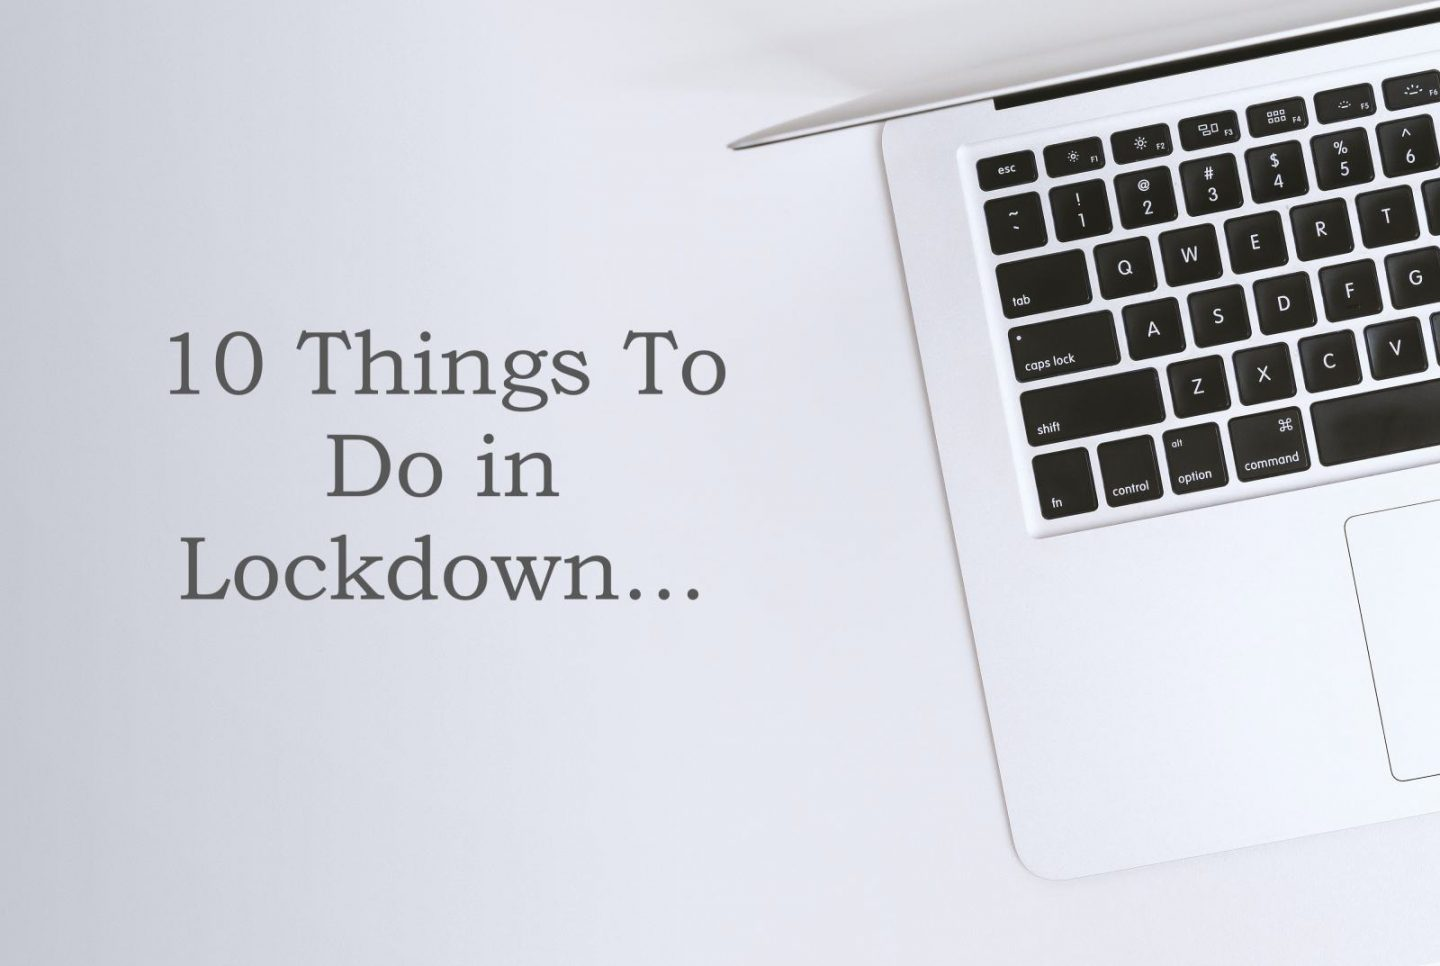 10 Things To Do in Lockdown